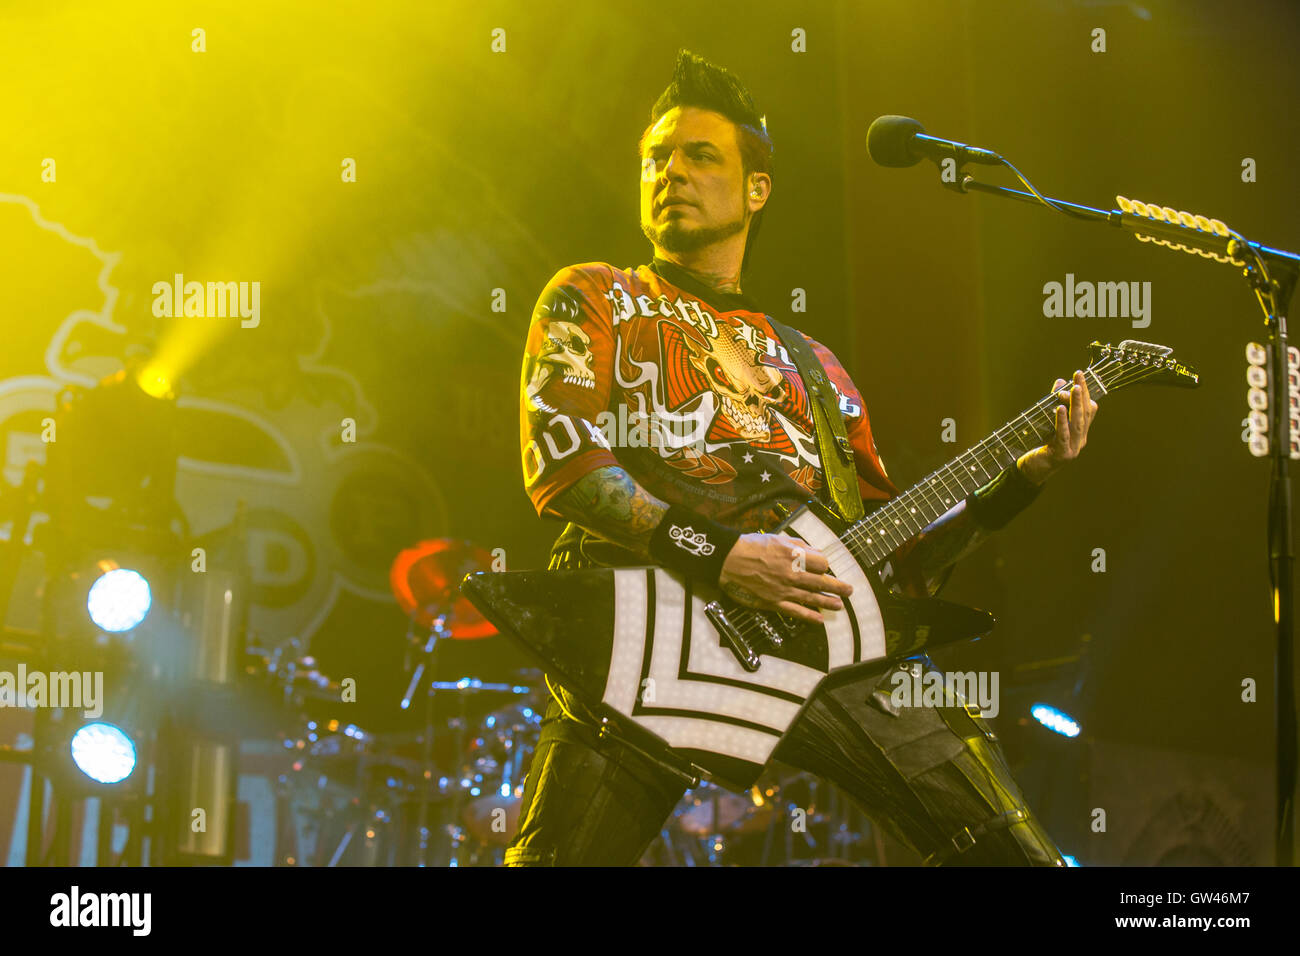 Jason Hook, guitarist of Five Finger Death Punch at Abbotsford Centre in Abbotsford, Canada on September 9th 2016 - Stock Image